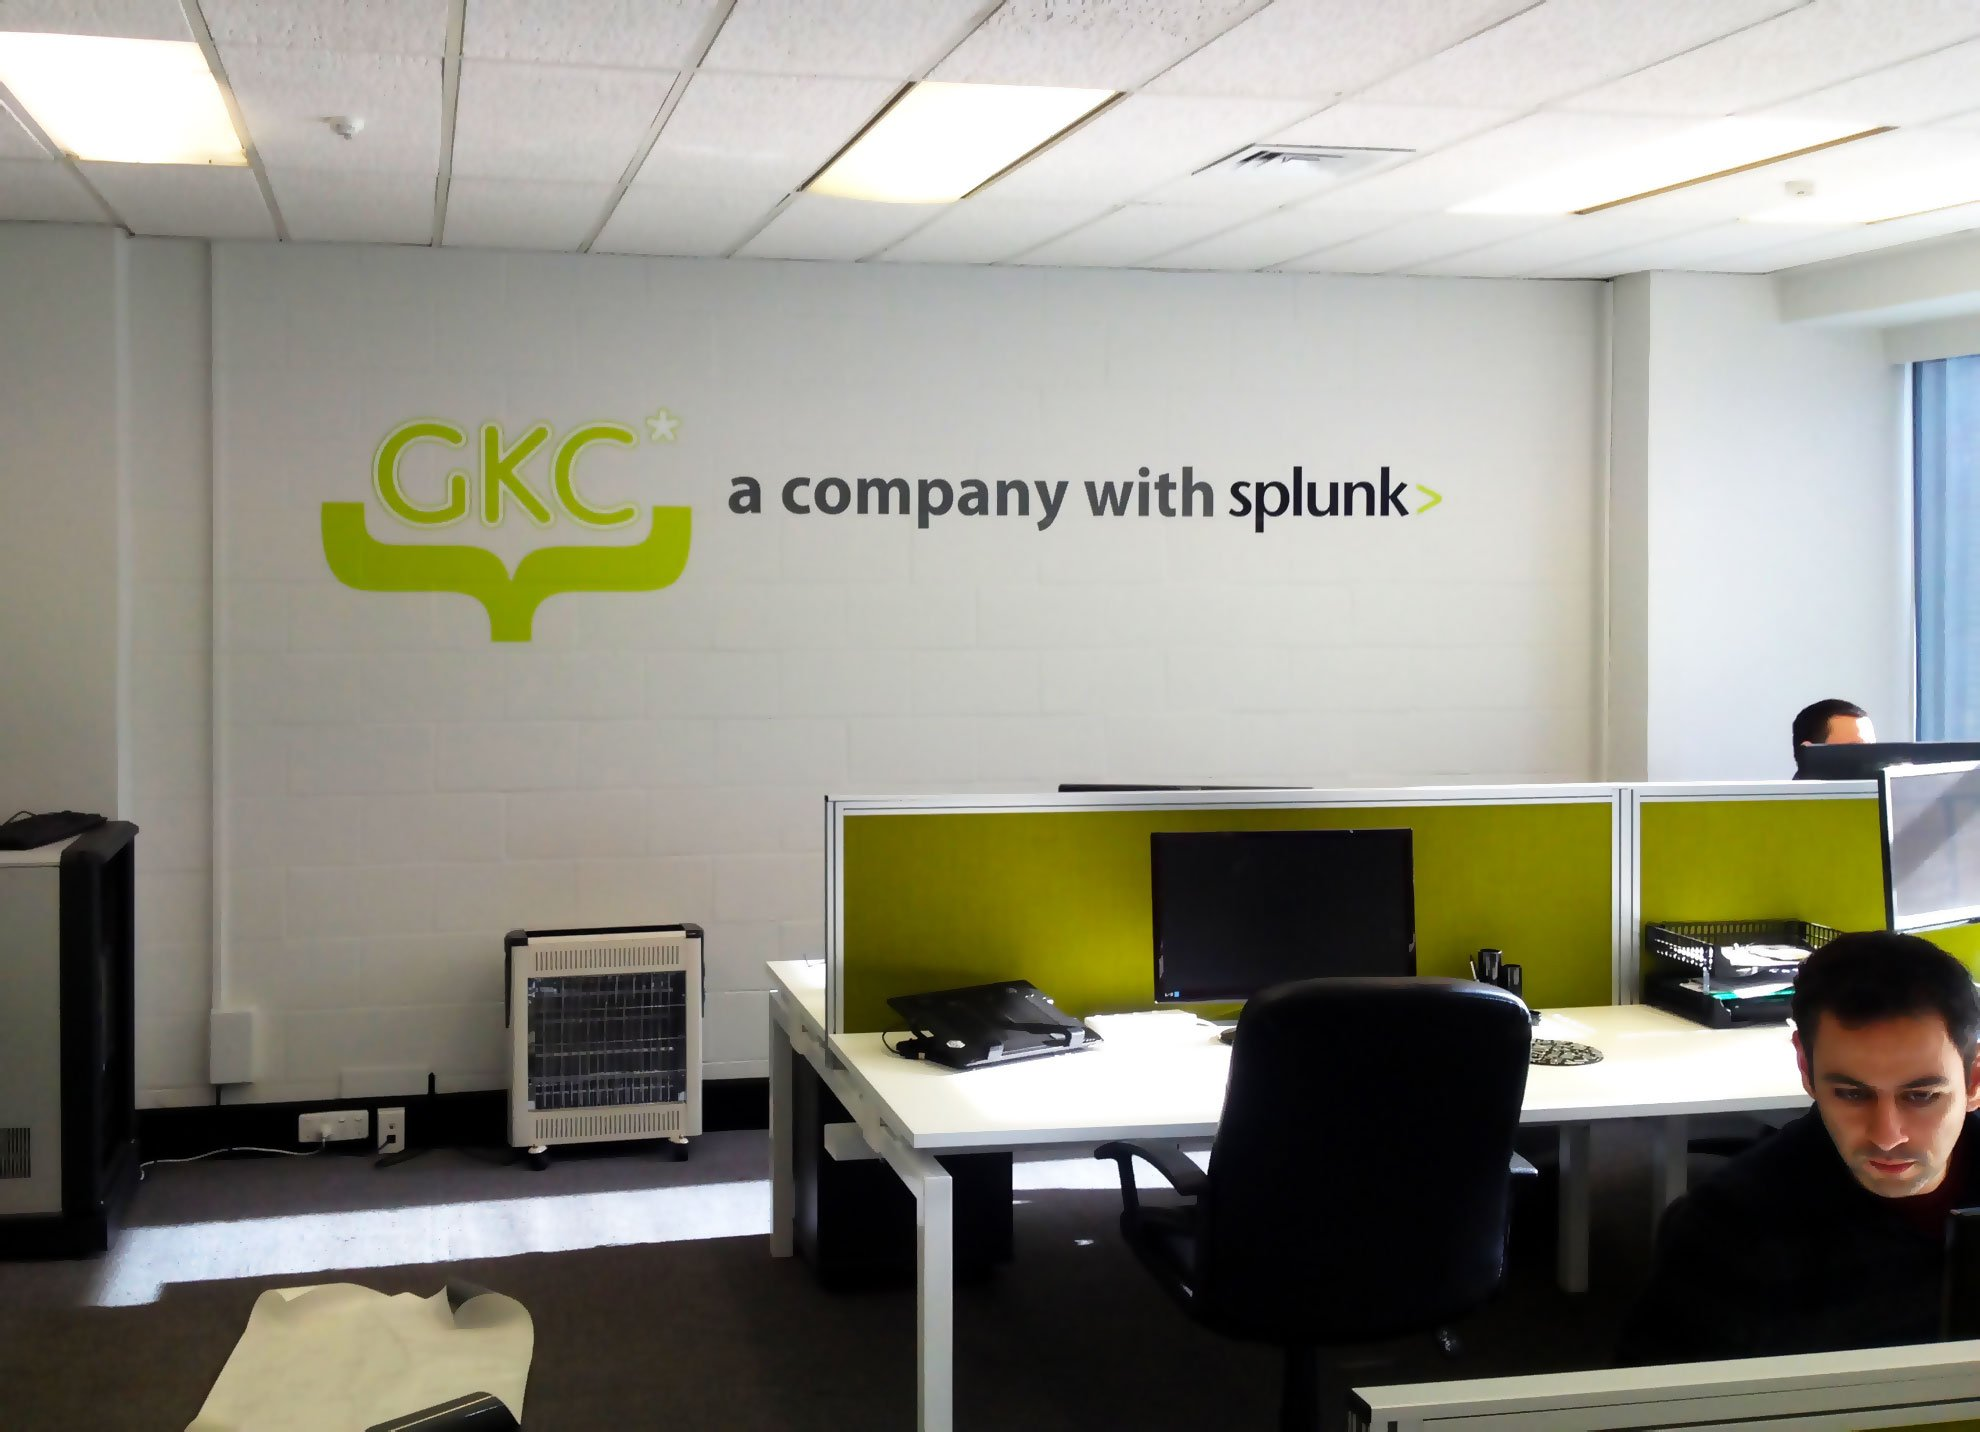 Computer cut vinyl lettering and logo applied to internal office wall